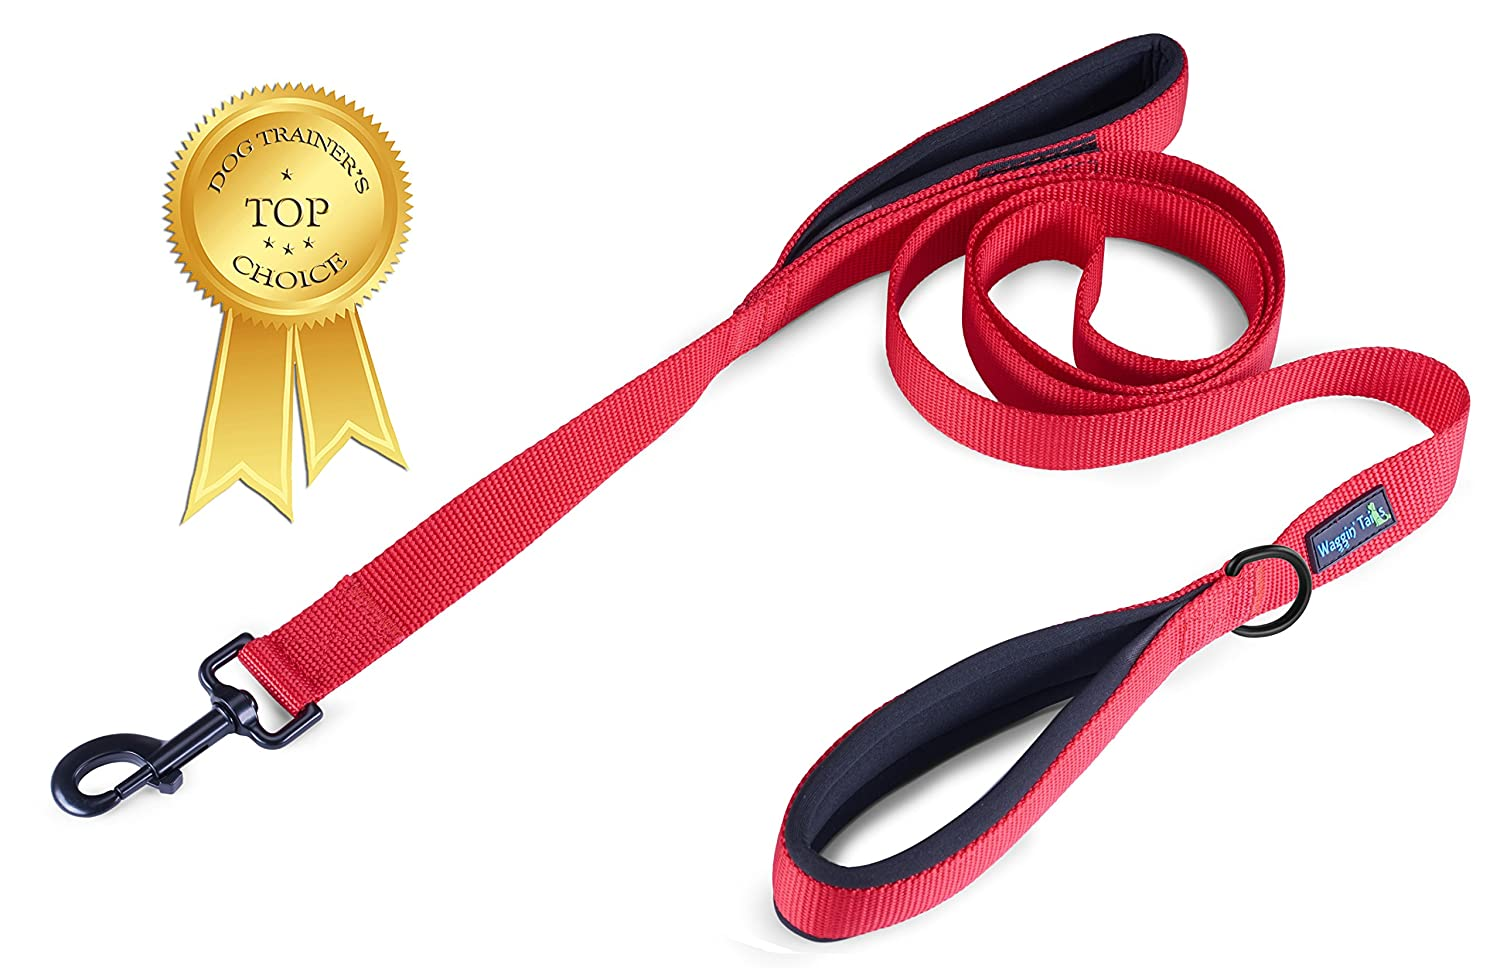 Carnation Red Double Handle Dog Leash with Extra Thick Padded Handles, Premium Nylon Dual Handles for Ultimate Control6ft or 1ft length for Medium to Large or Extra-Large Dog EZ Walker by Waggin' Tails Co.